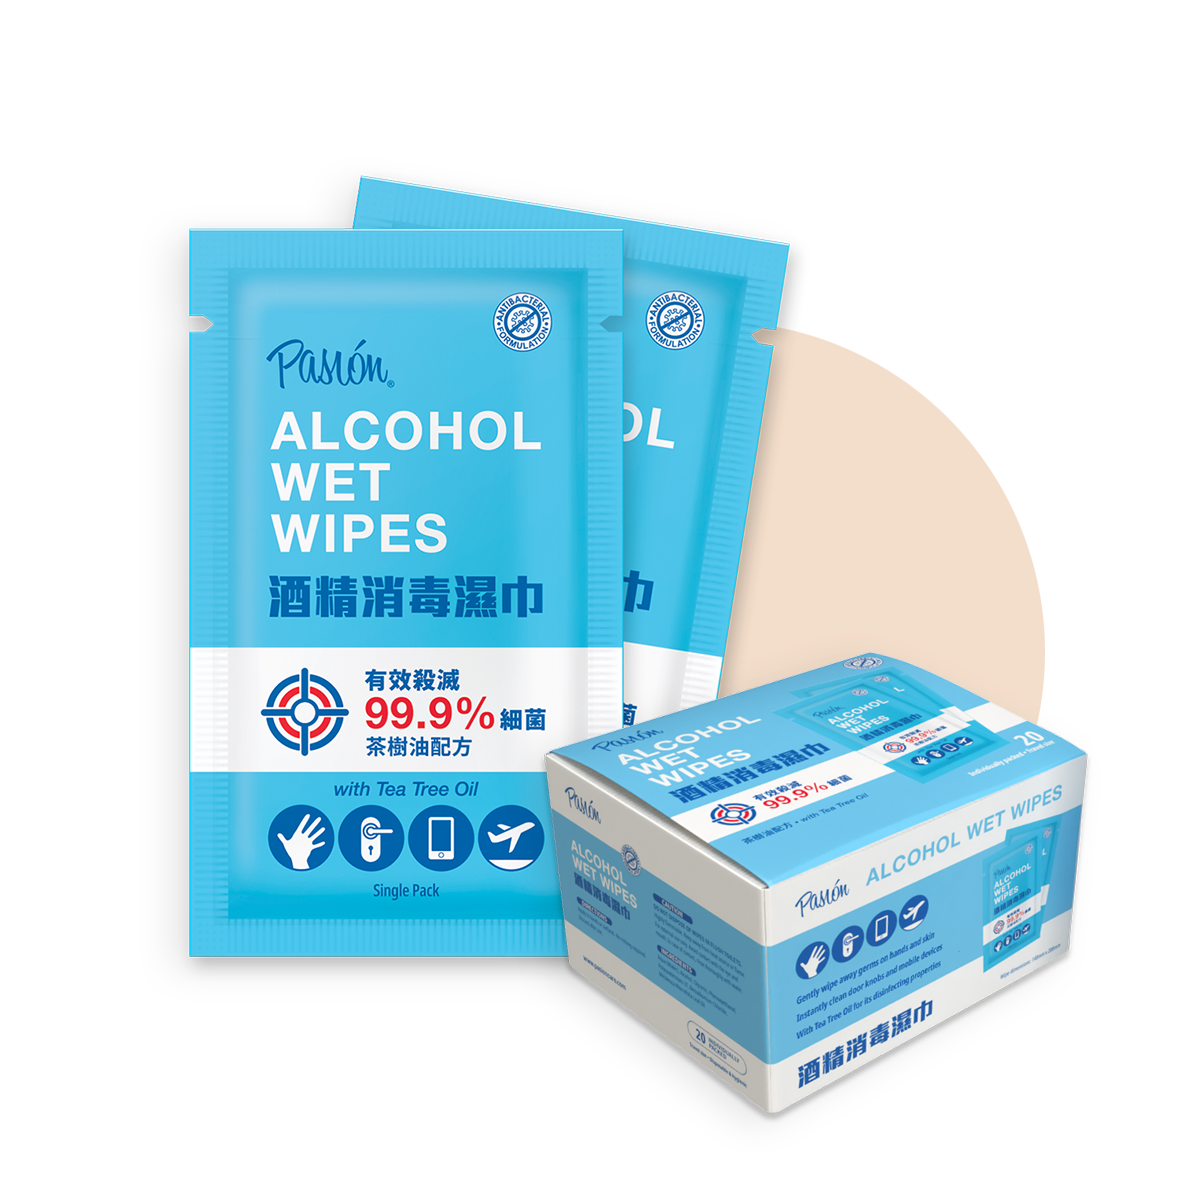 alcohol_wet_wipes_hk